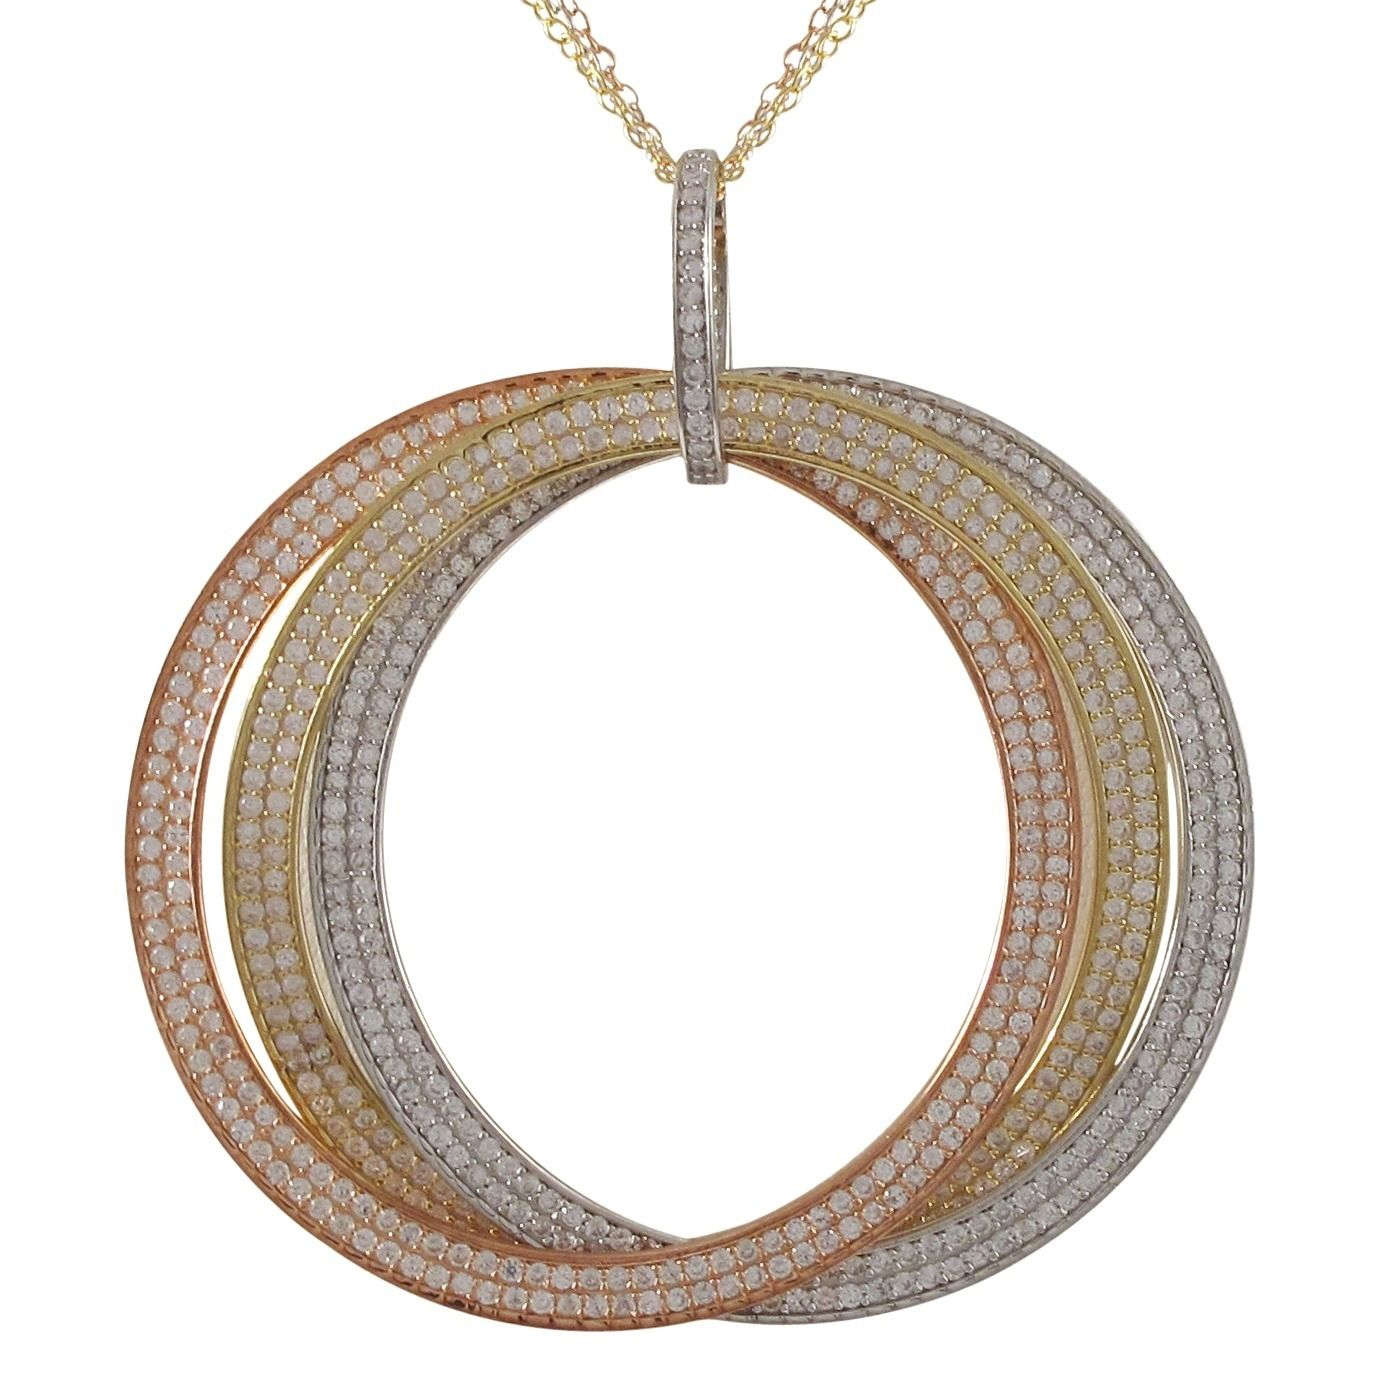 Luxiro Sterling Silver Tri-color Cubic Zirconia Large Link Pendant Necklace (Large Tri Color with 3 Row Chain), Women's, Size: 18 Inch